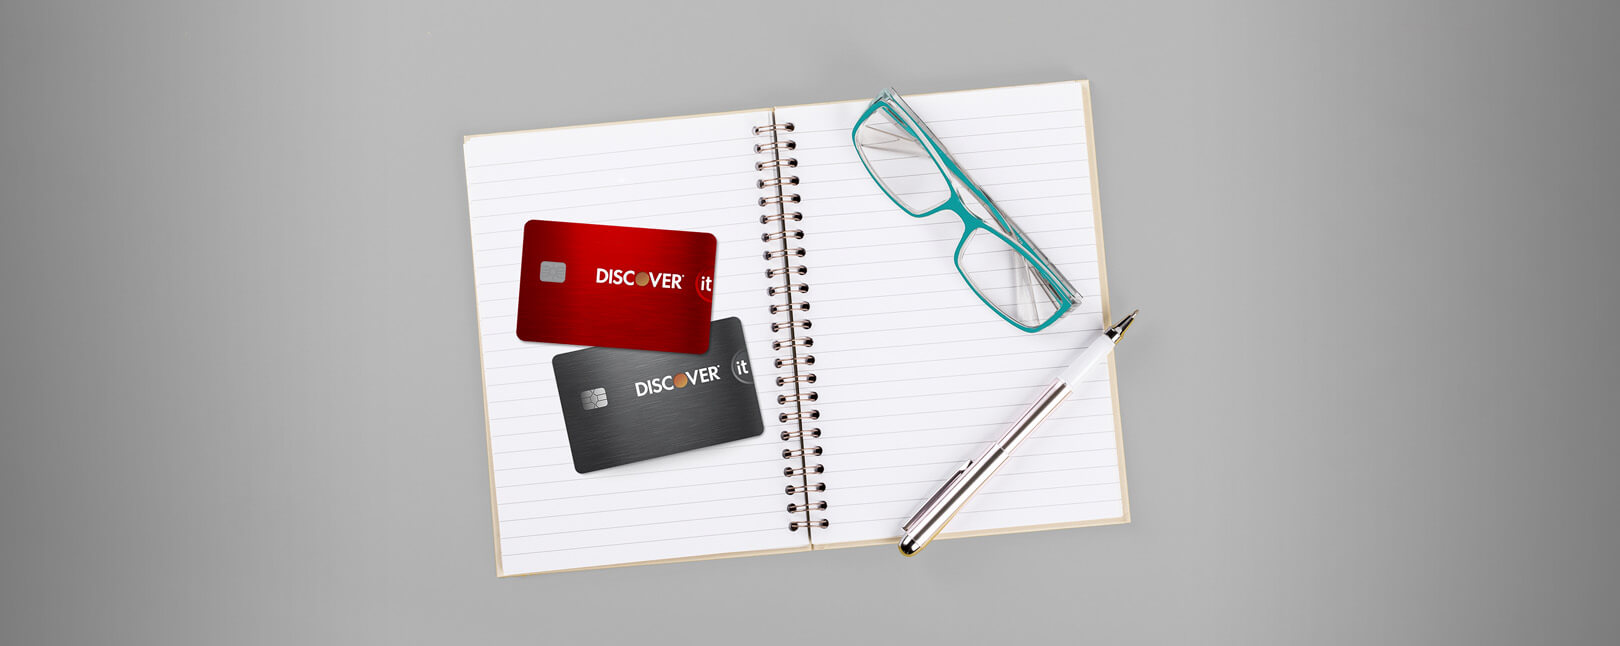 Discover card chargeback